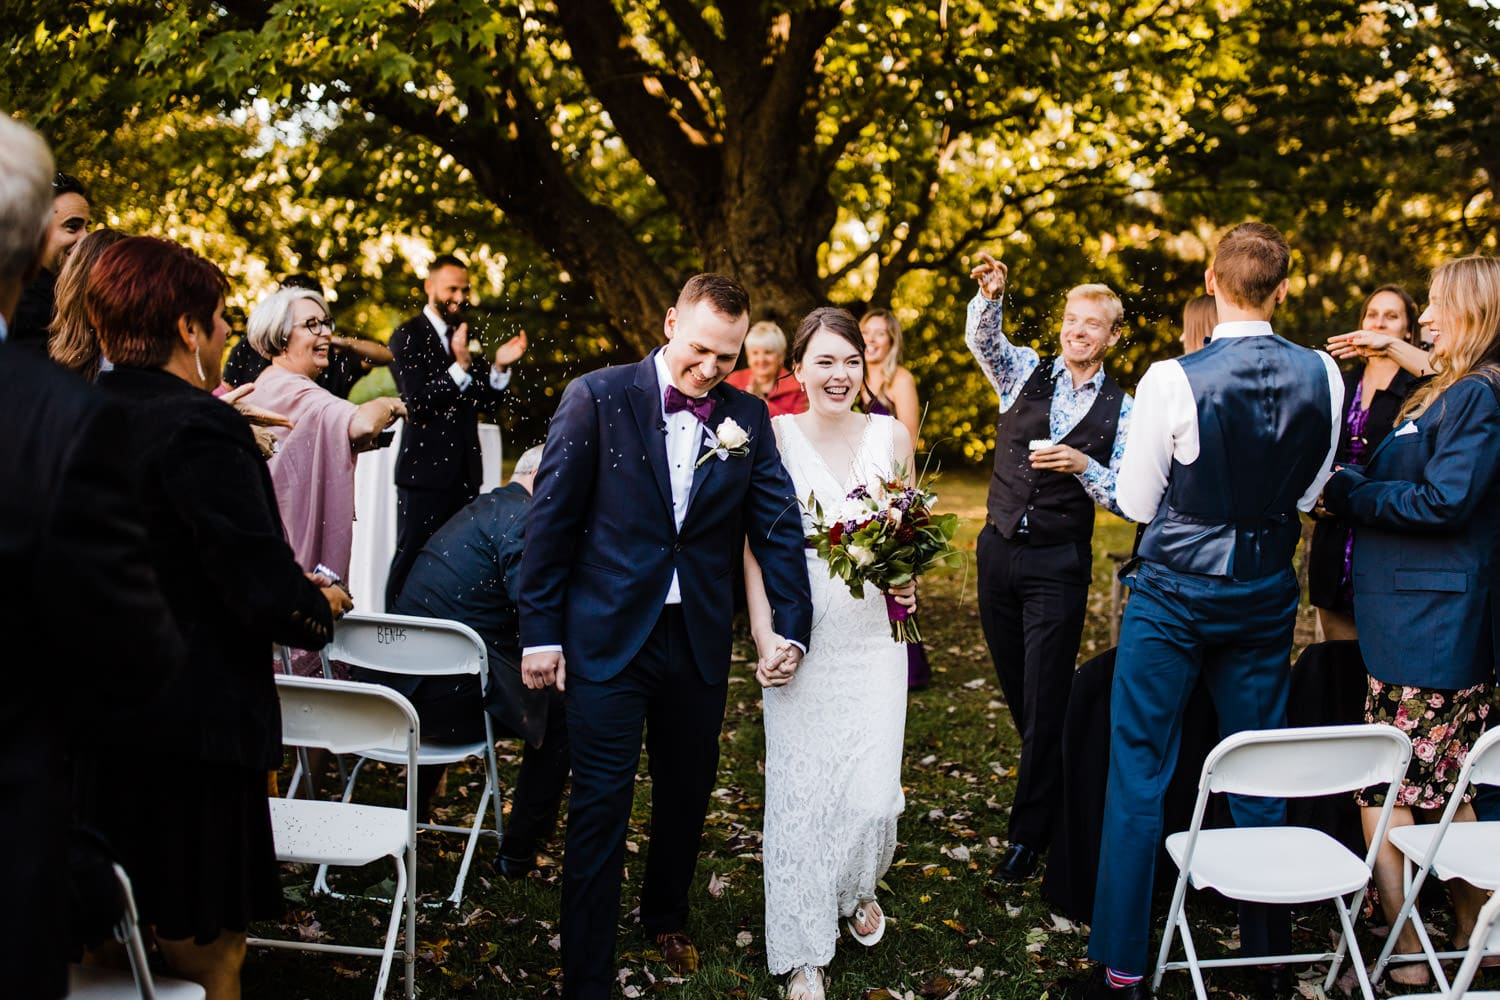 bride and groom leave ceremony as guests throw lavender - ottawa wedding photographer - carley teresa photography